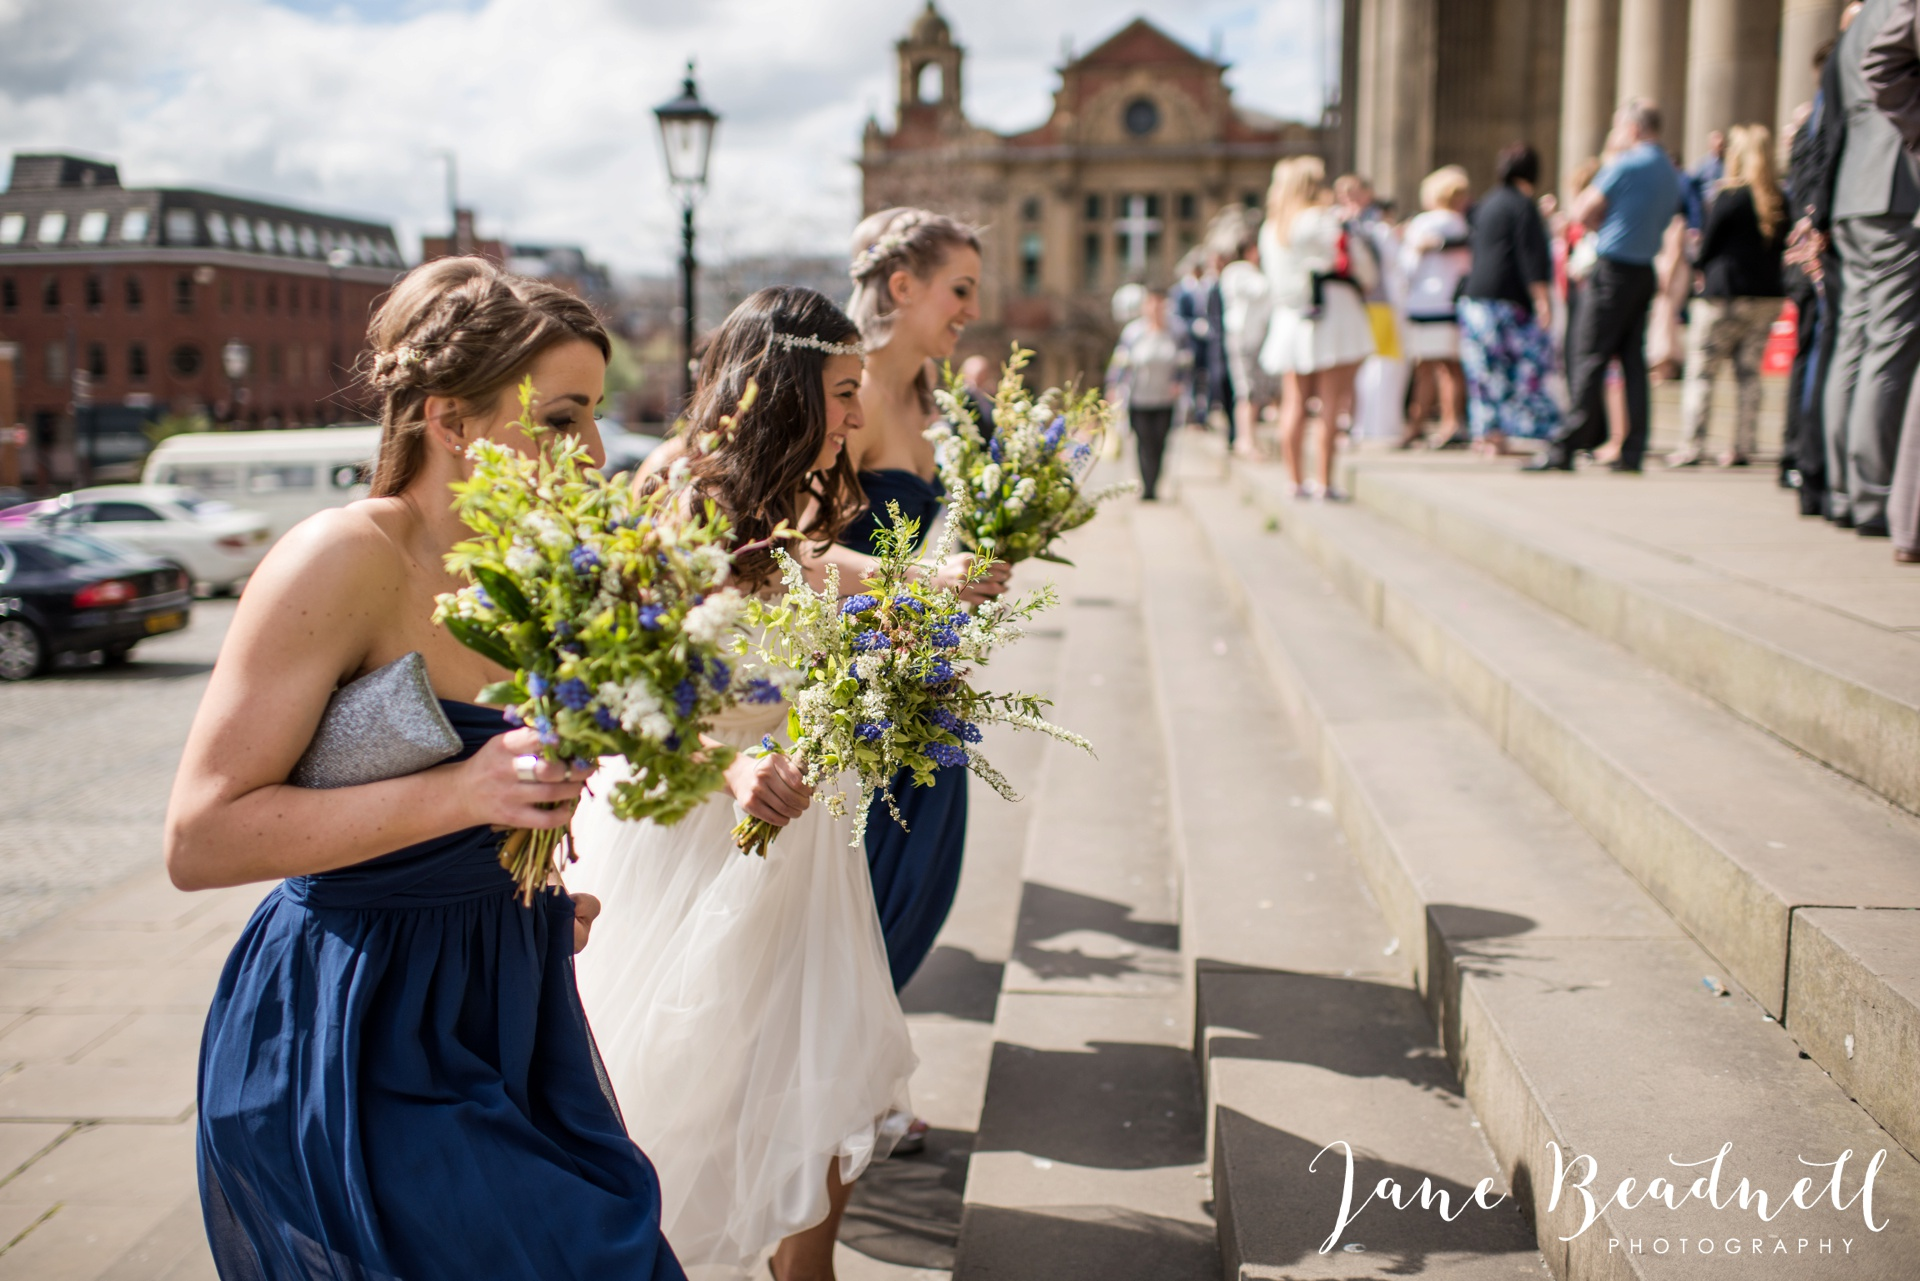 Left Bank Centre Leeds wedding photography by Jane Beadnell photography Yorkshire_0021